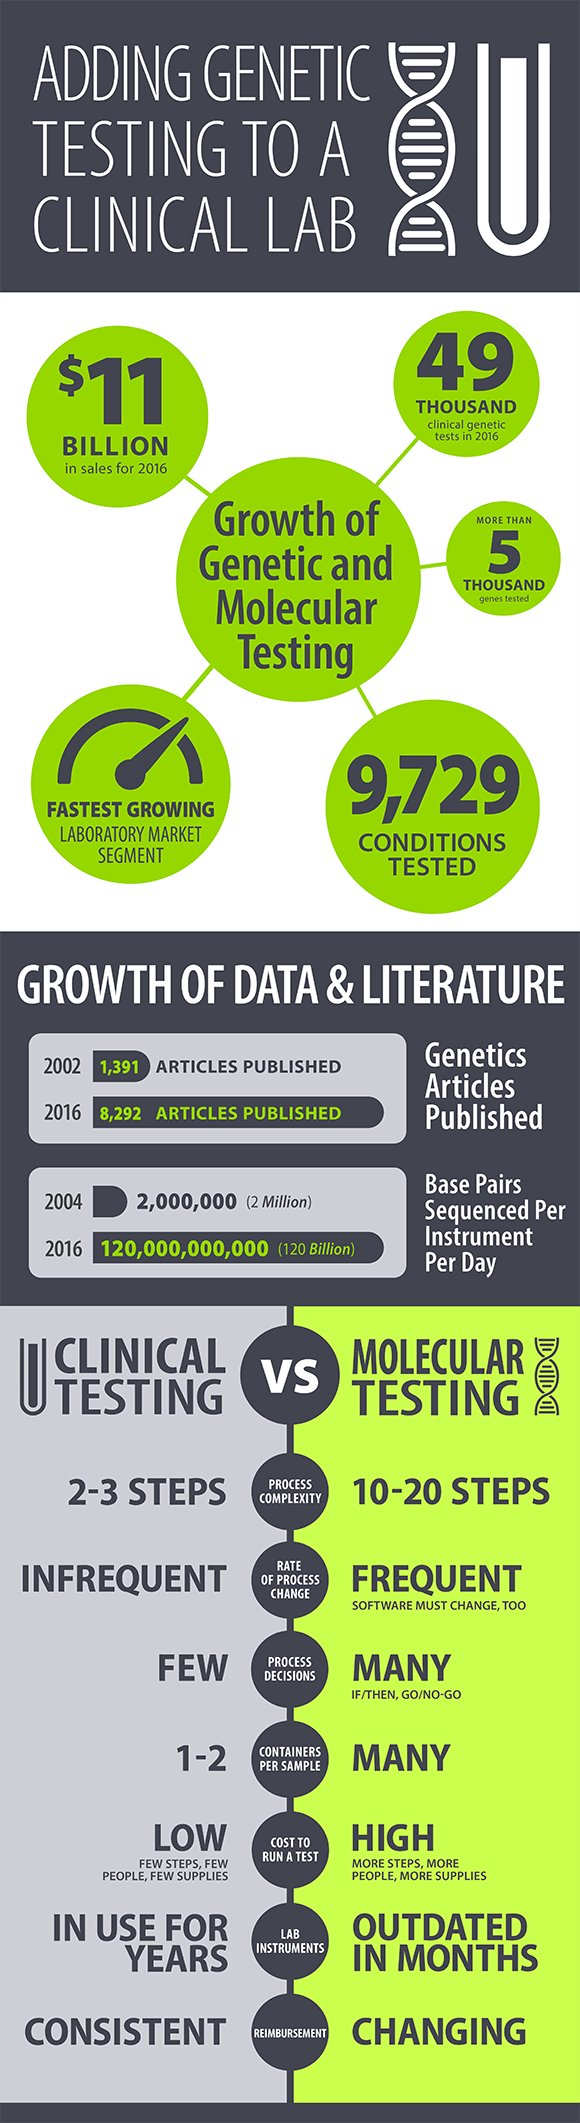 Infographic Adding Genetic Testing to a Clinical Lab